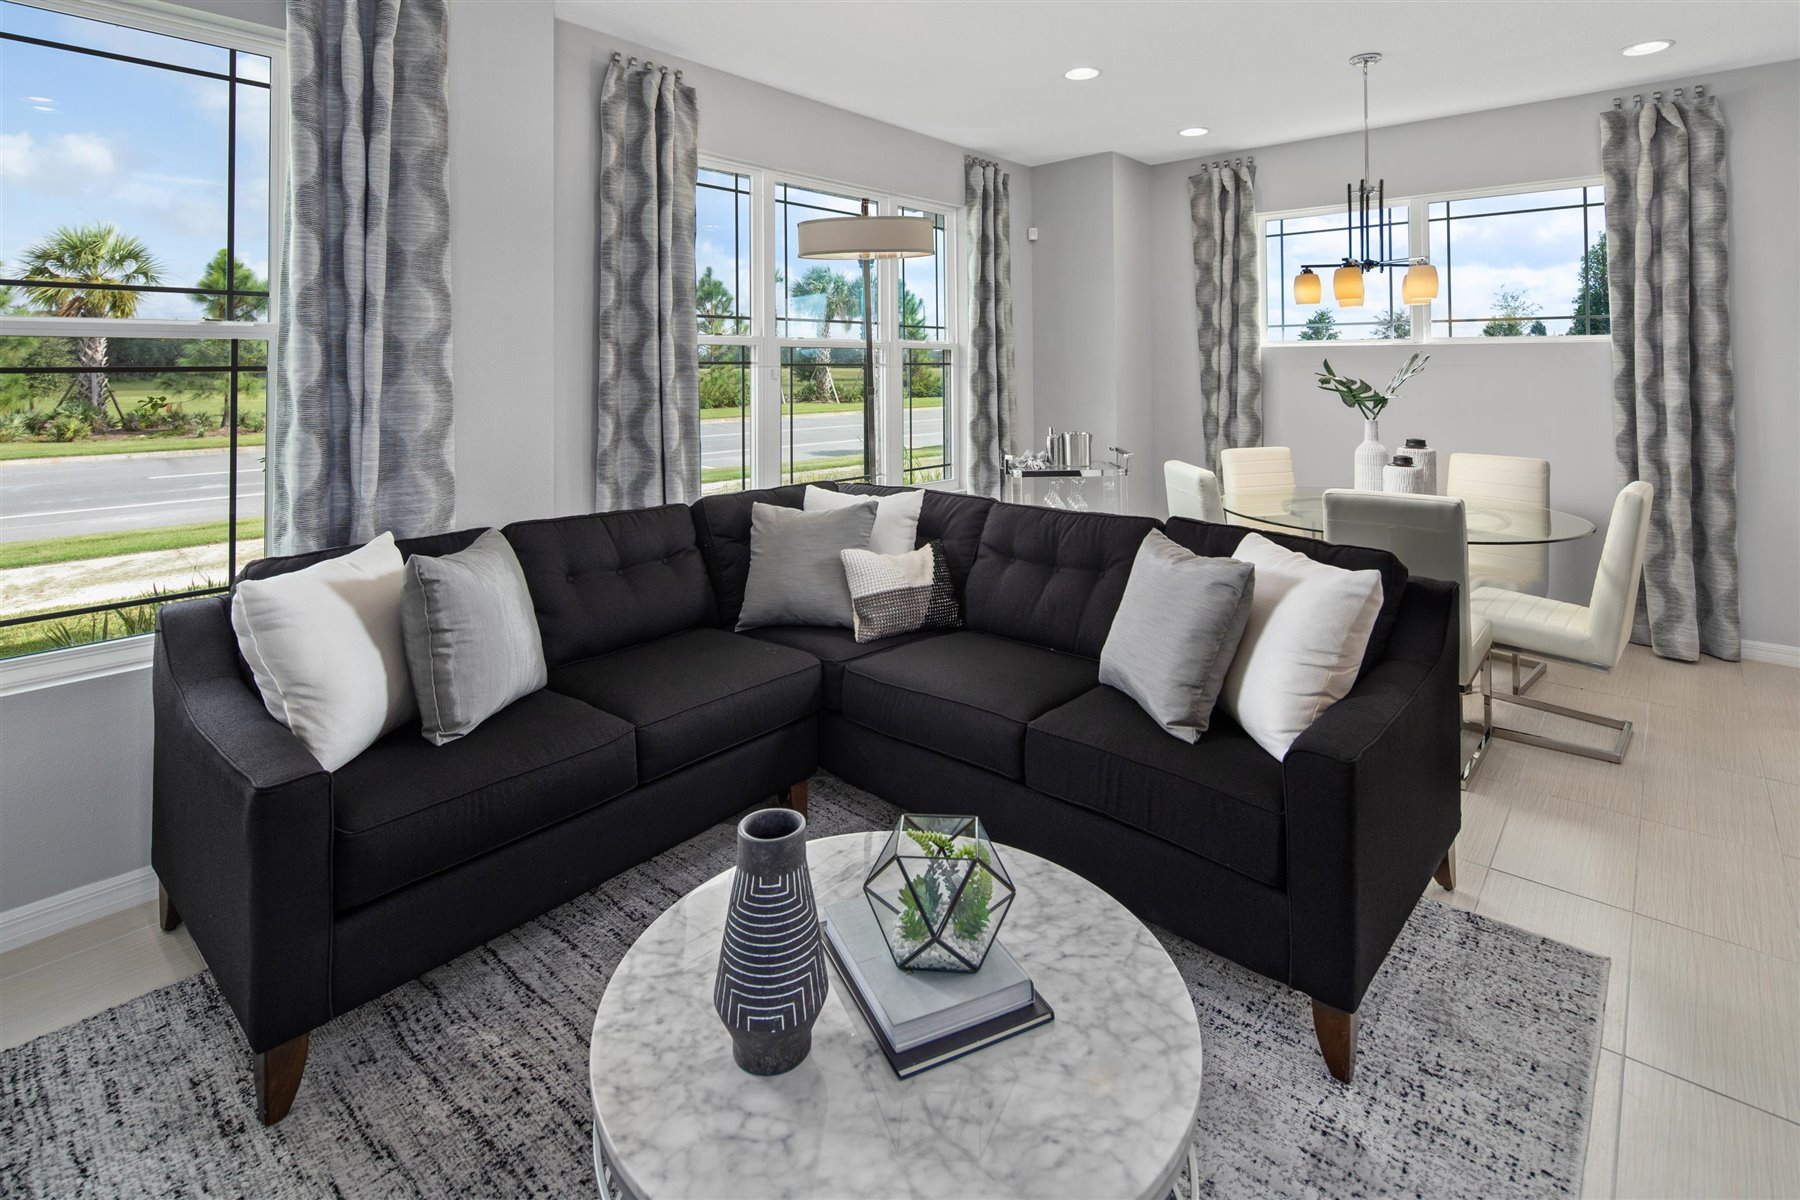 Marabel III Plan Greatroom at Randal Walk in Orlando Florida by Mattamy Homes